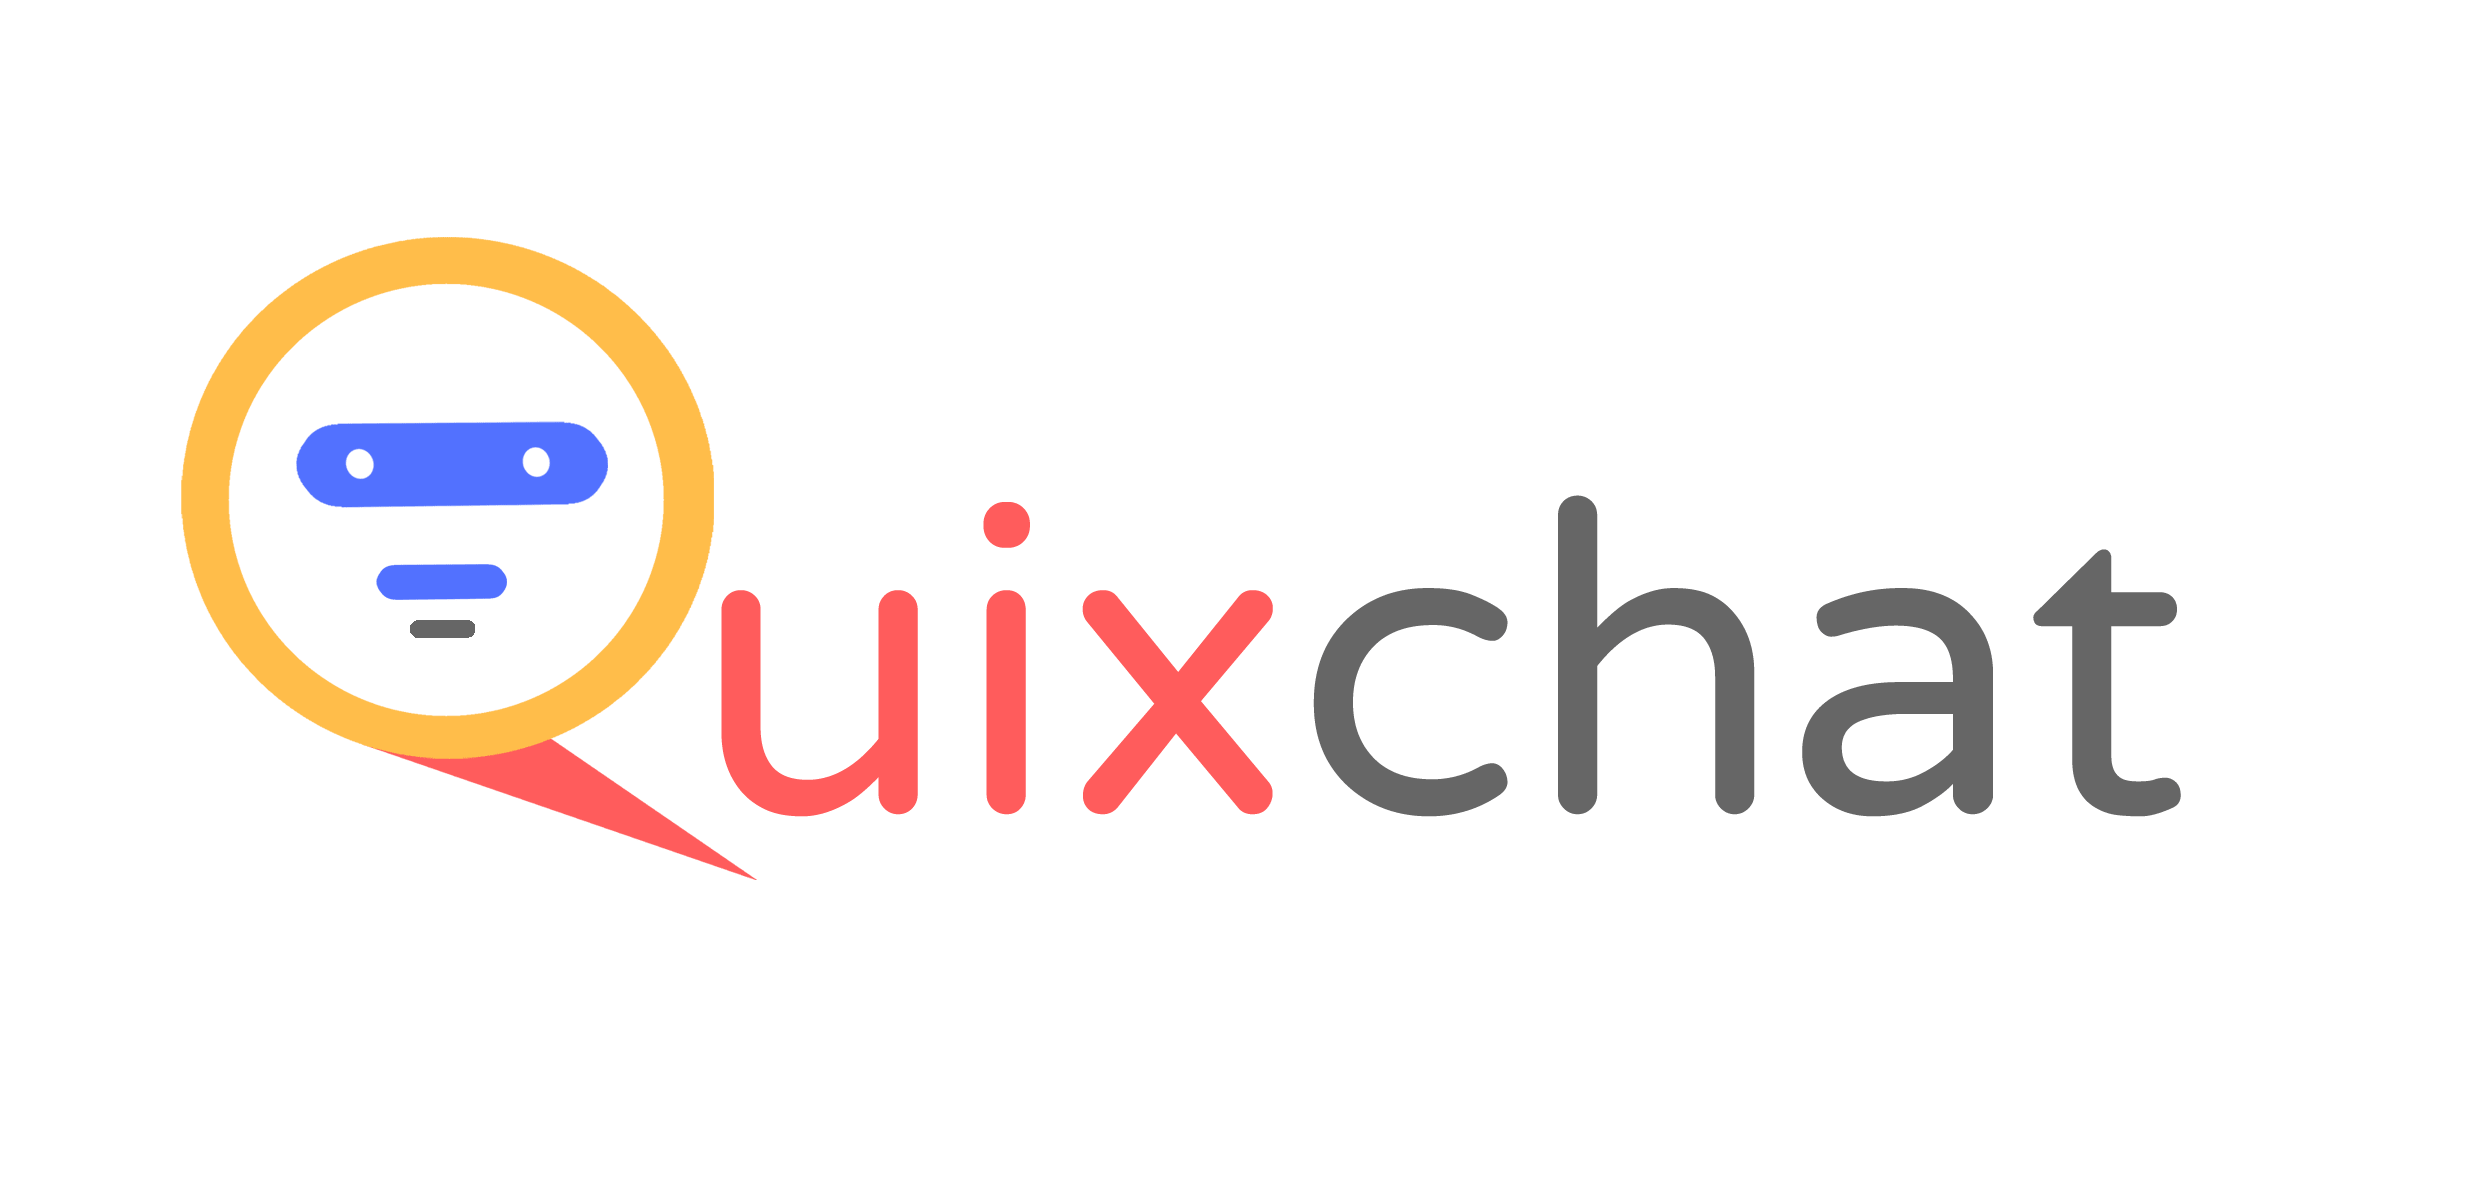 QuixChat - Add Automated Bot Chat support & Customer Support to your website with popular messengers